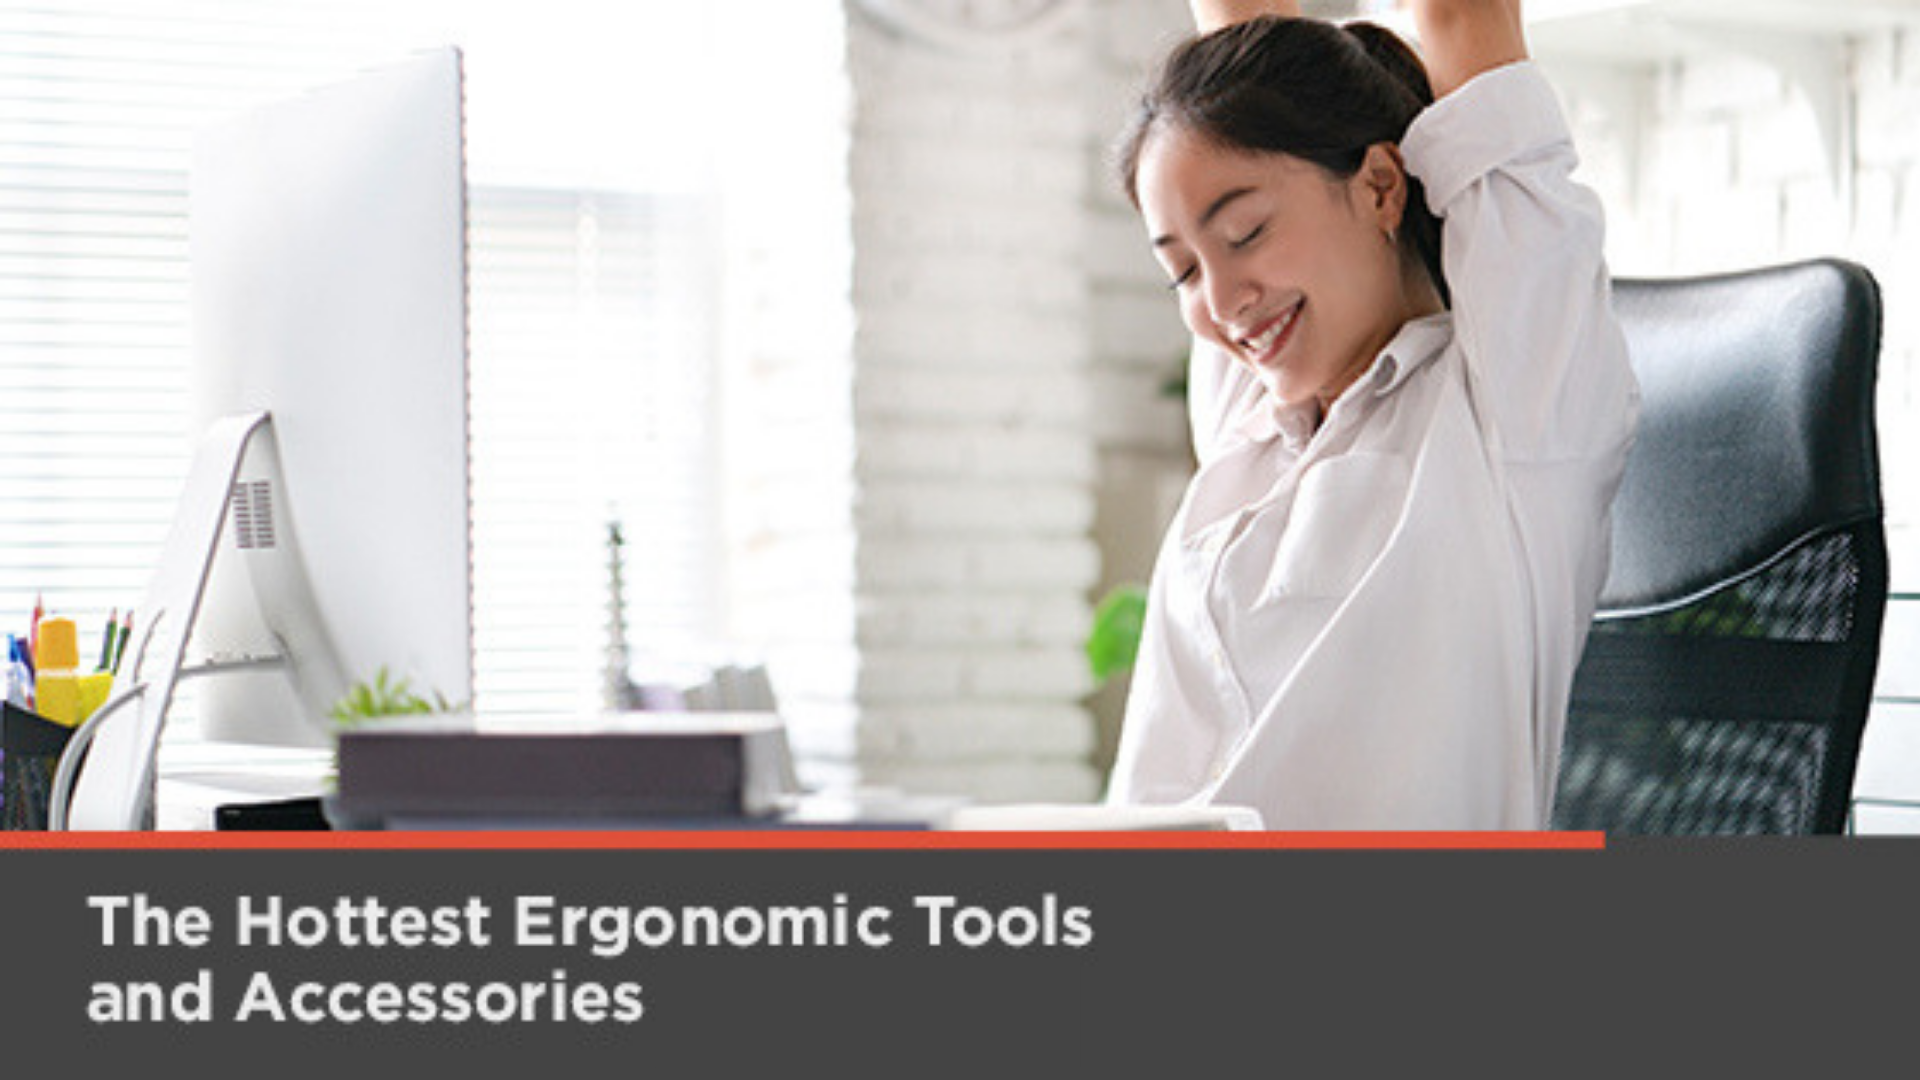 Top Ergonomic Trends, Tools, and Accessories